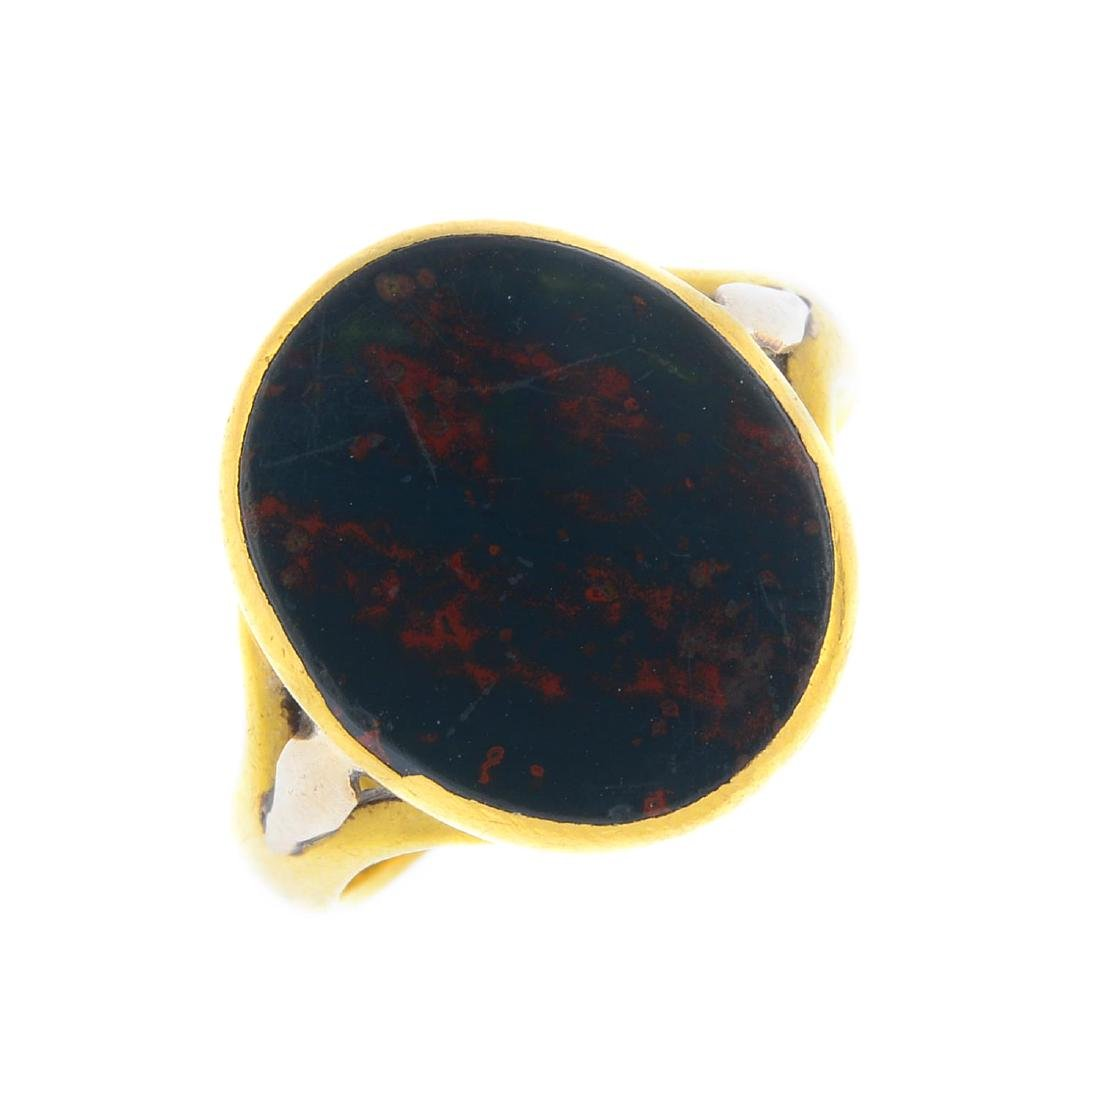 An early 20th century 22ct gold bloodstone signet ring.